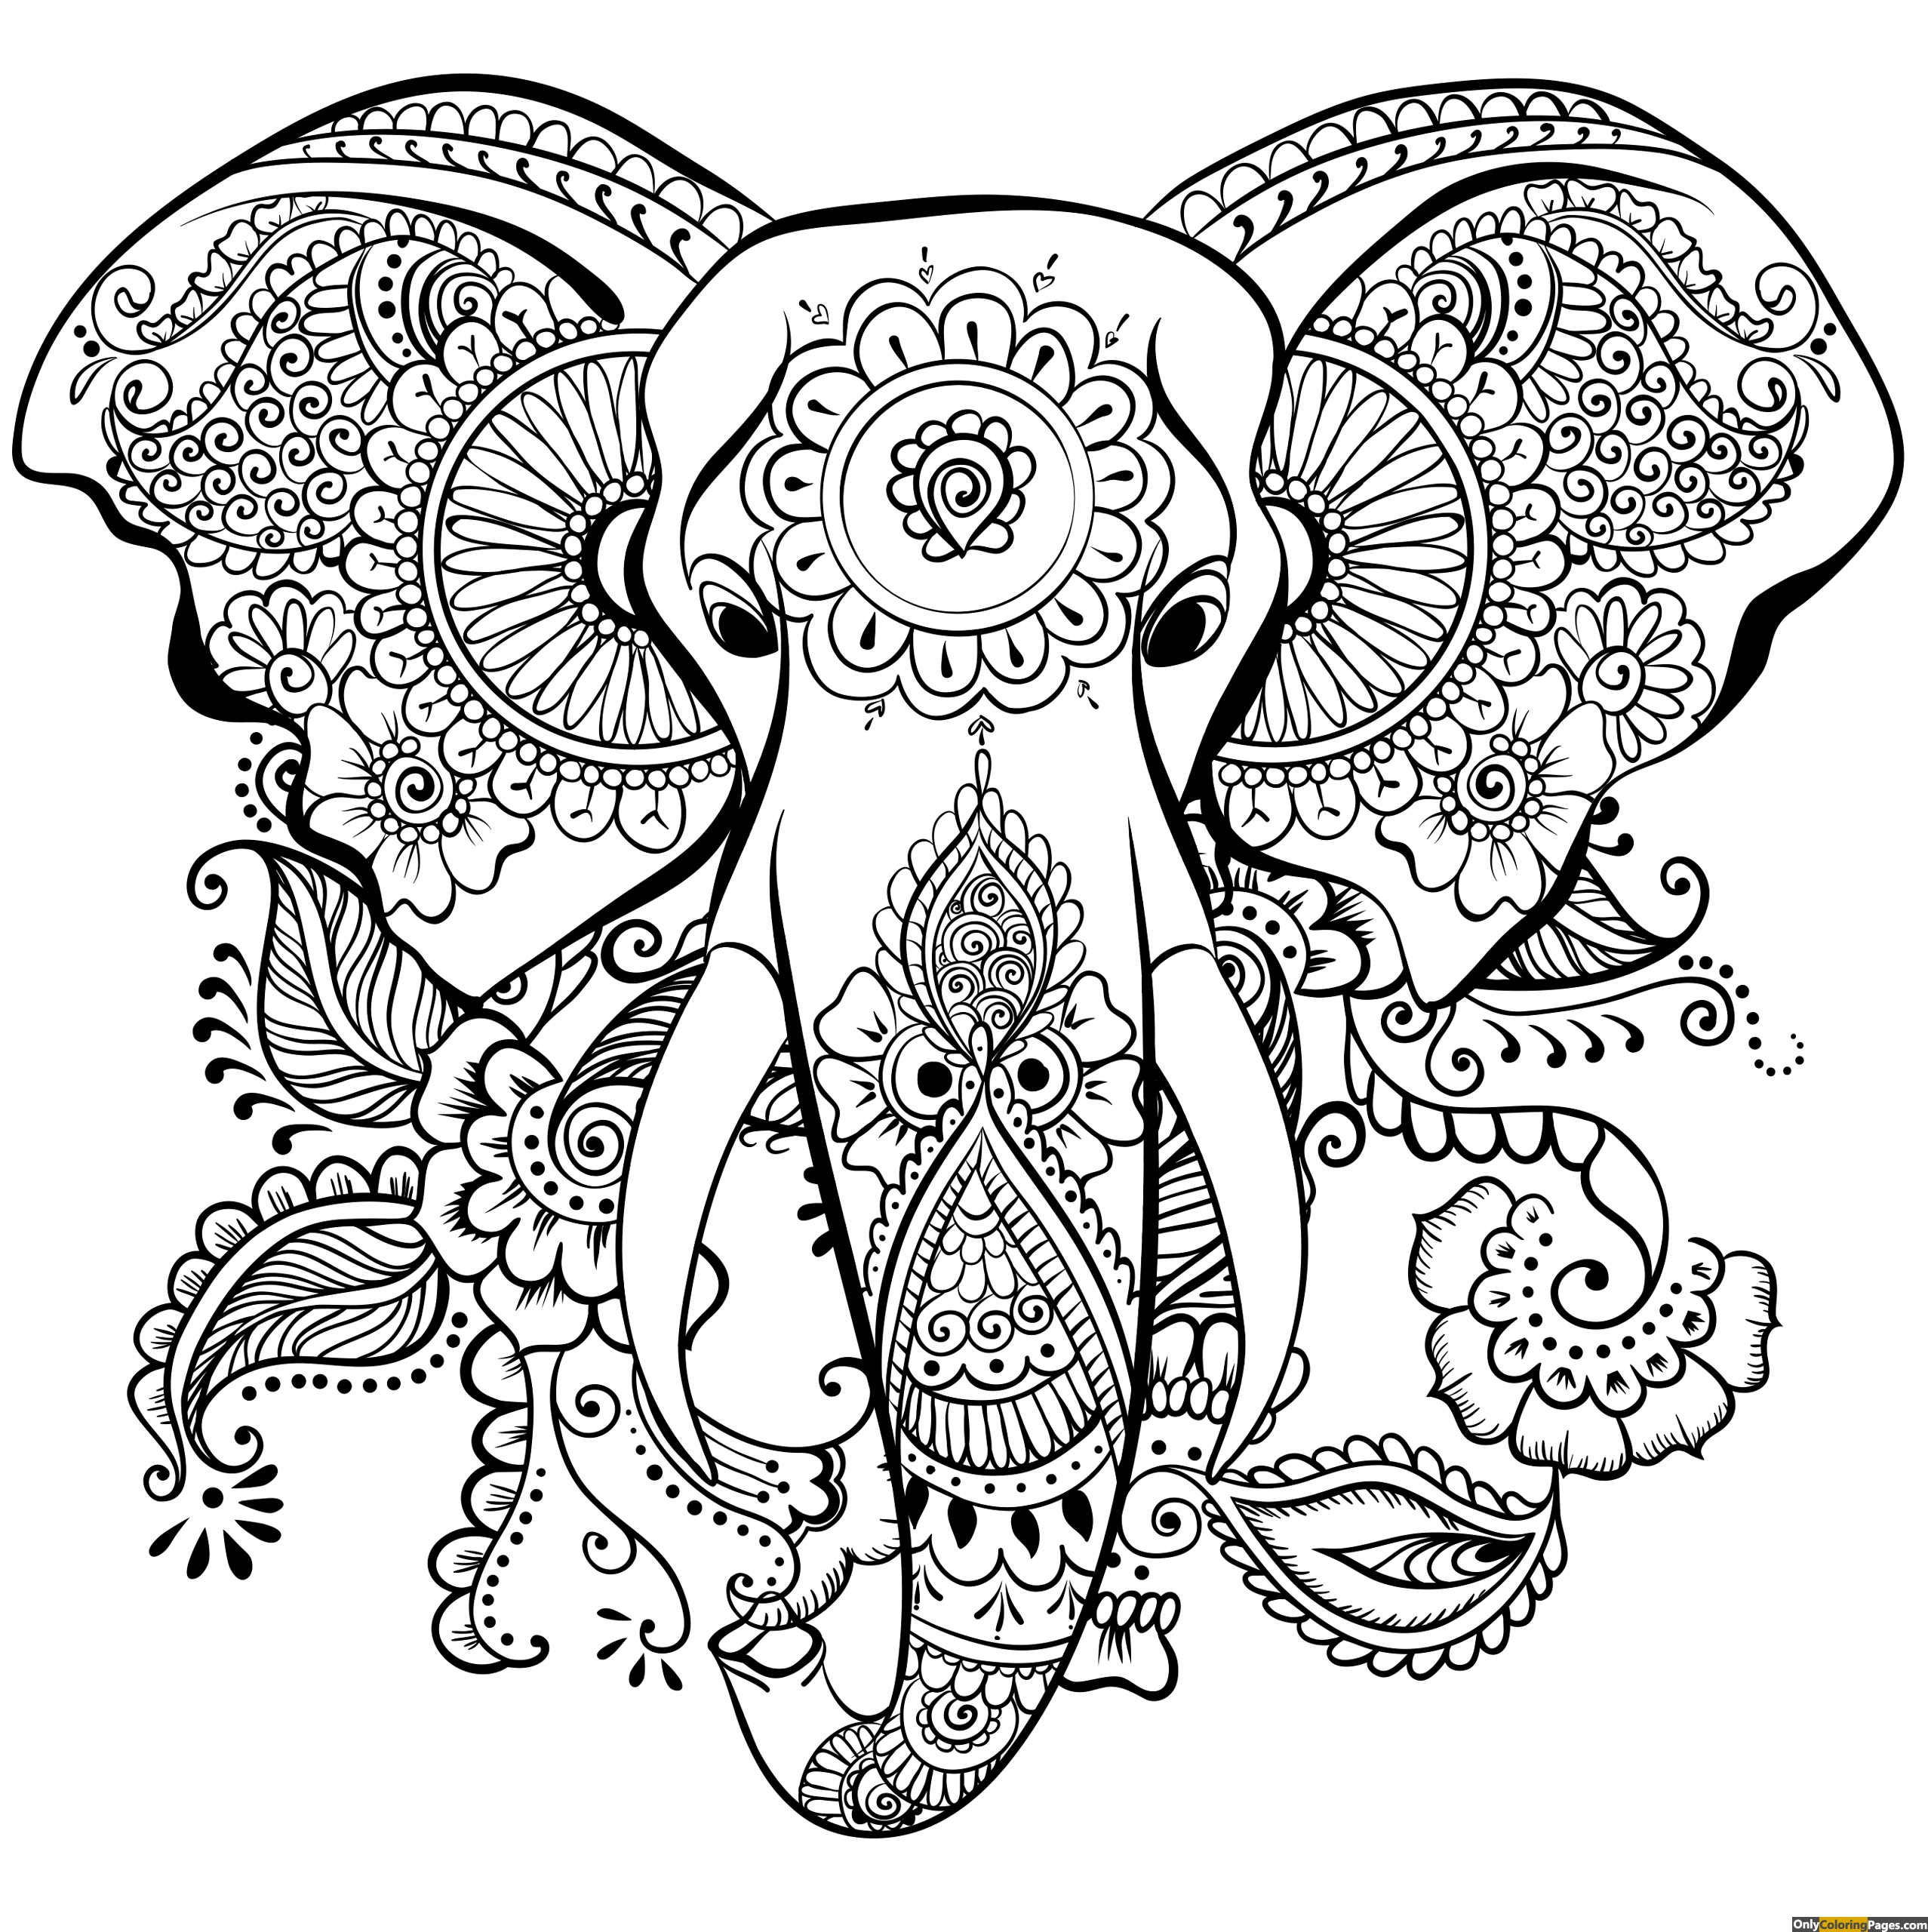 summer, share, p, new, mandalas, mandala, love, freecoloringpages, free, follow, elephants, Elephant, colouringpages, colouring, coloringpages, coloring, Best, animals, animal